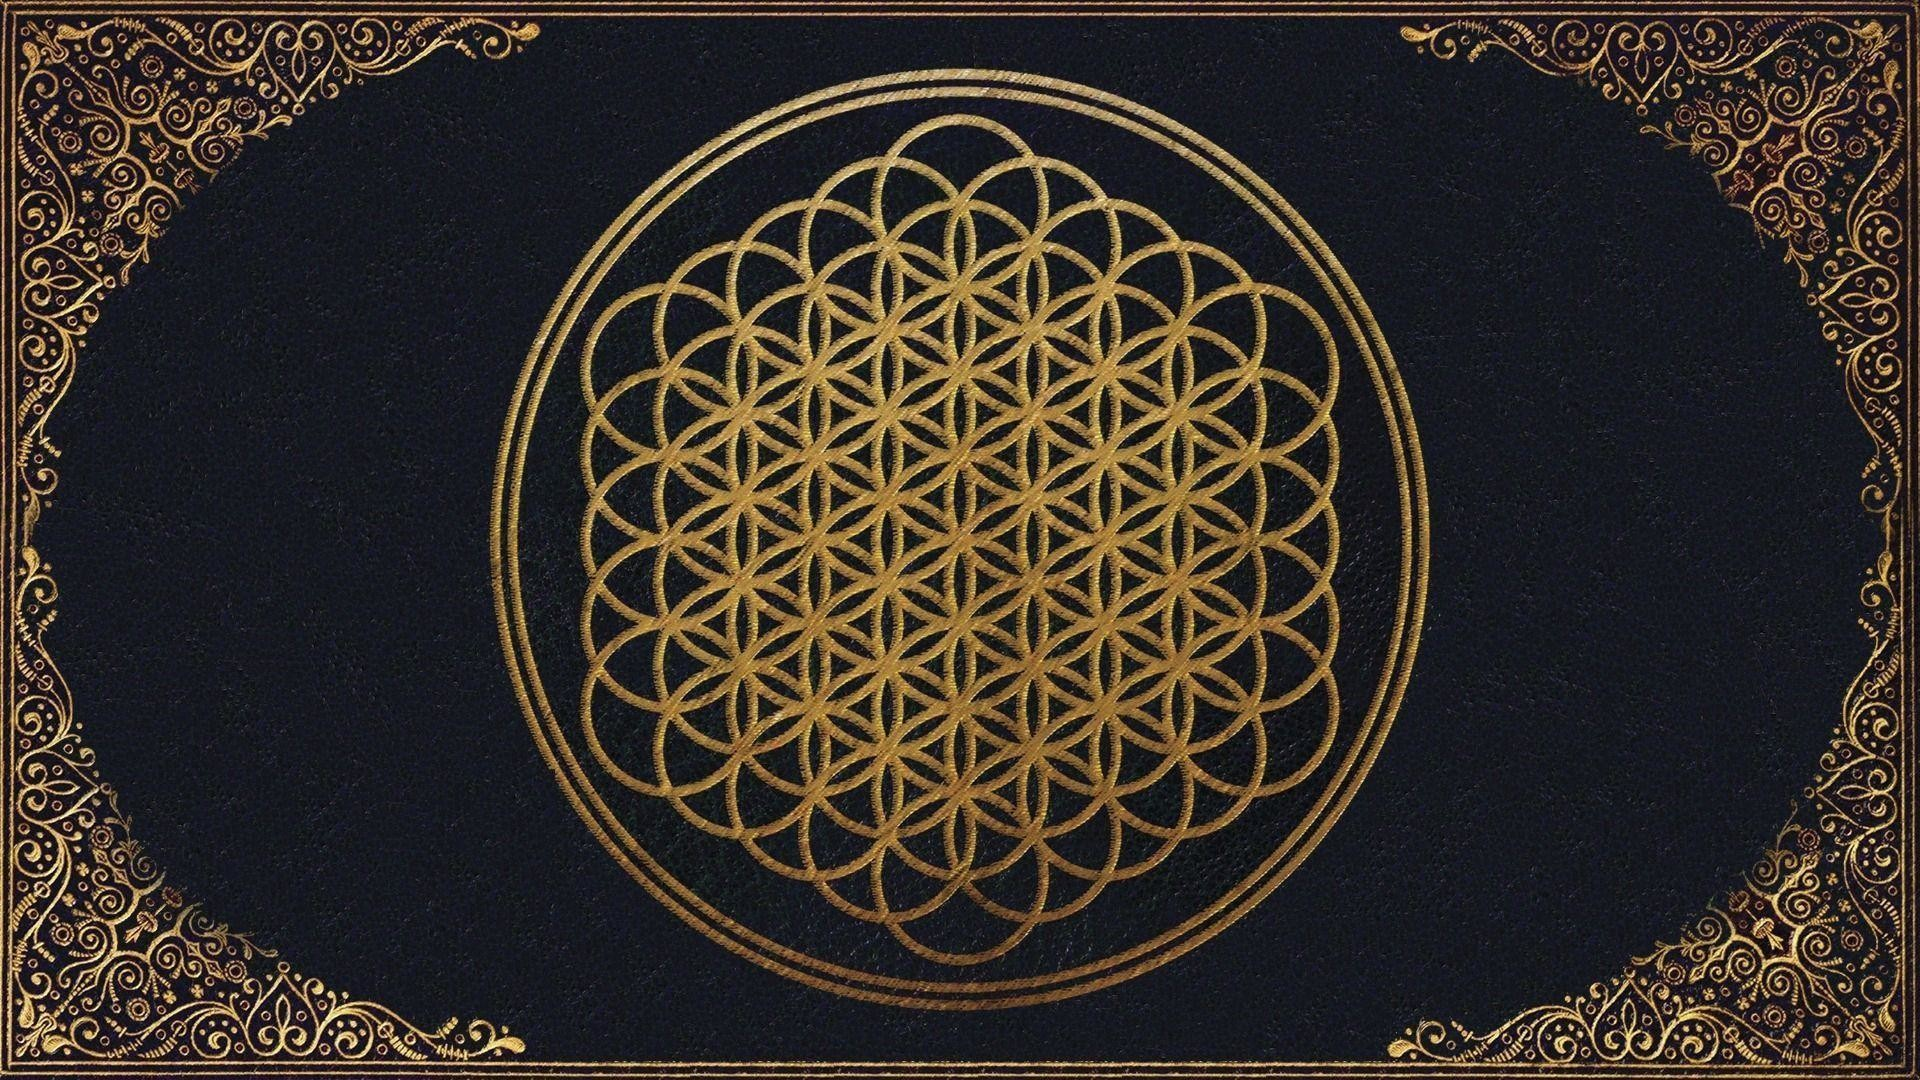 1920x1080 BRING ME THE HORIZON Go To Hell For Heavens Sake Video